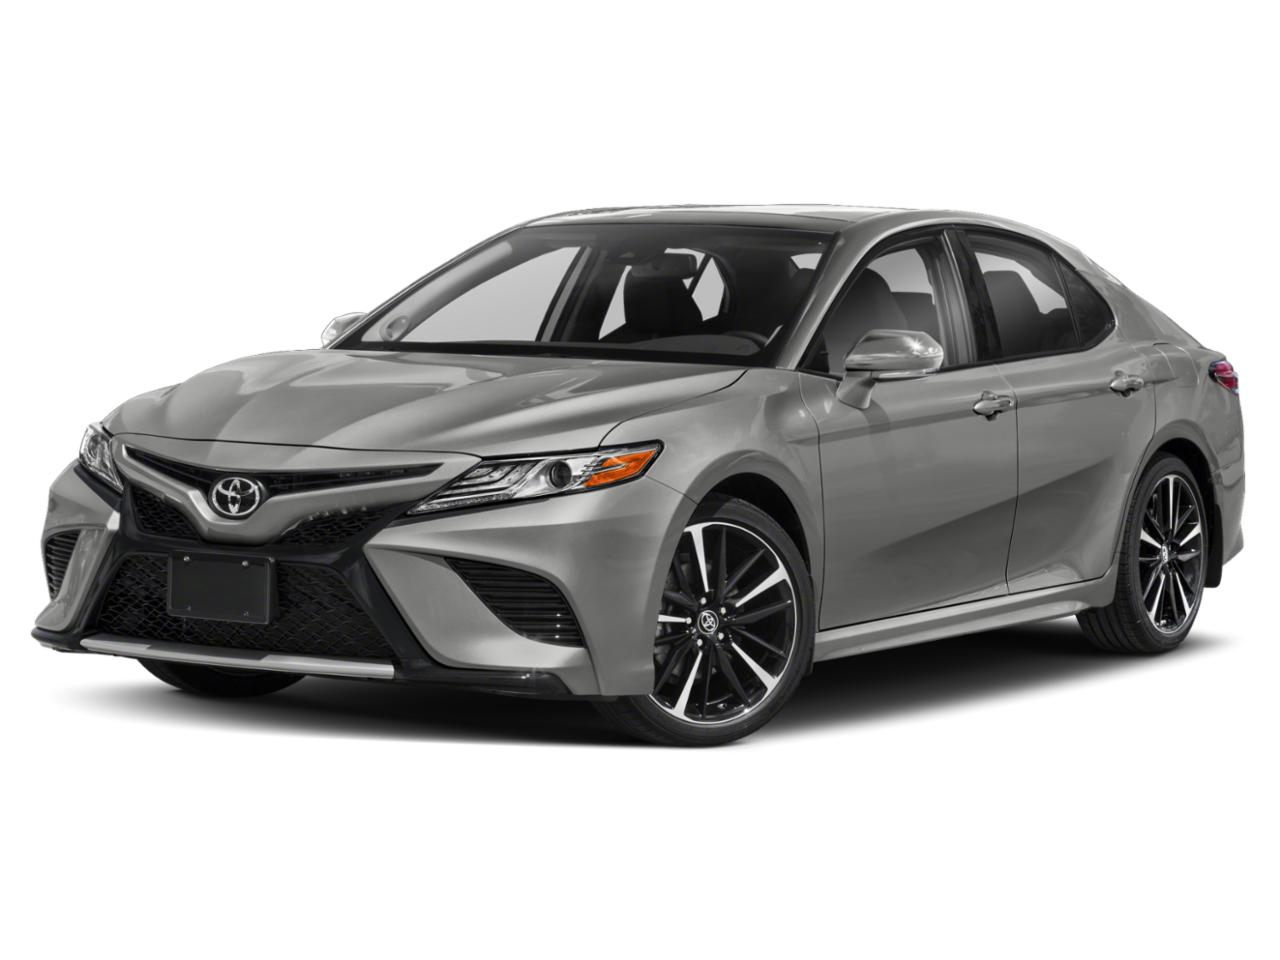 2019 Toyota Camry Vehicle Photo in Quakertown, PA 18951